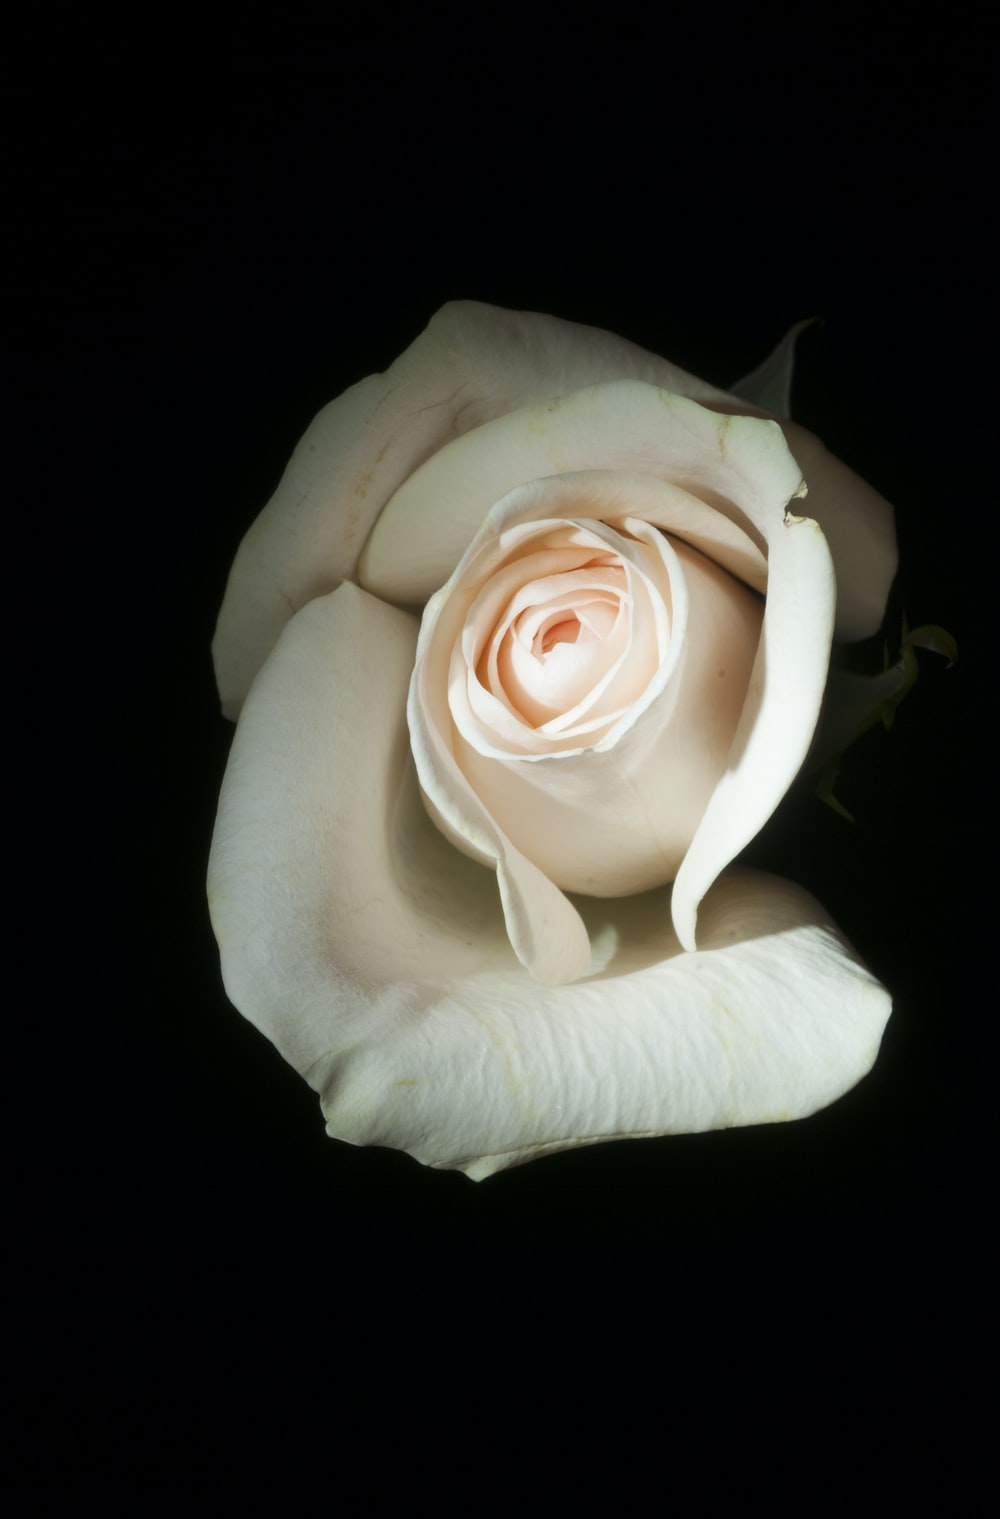 close-up photo of white rose